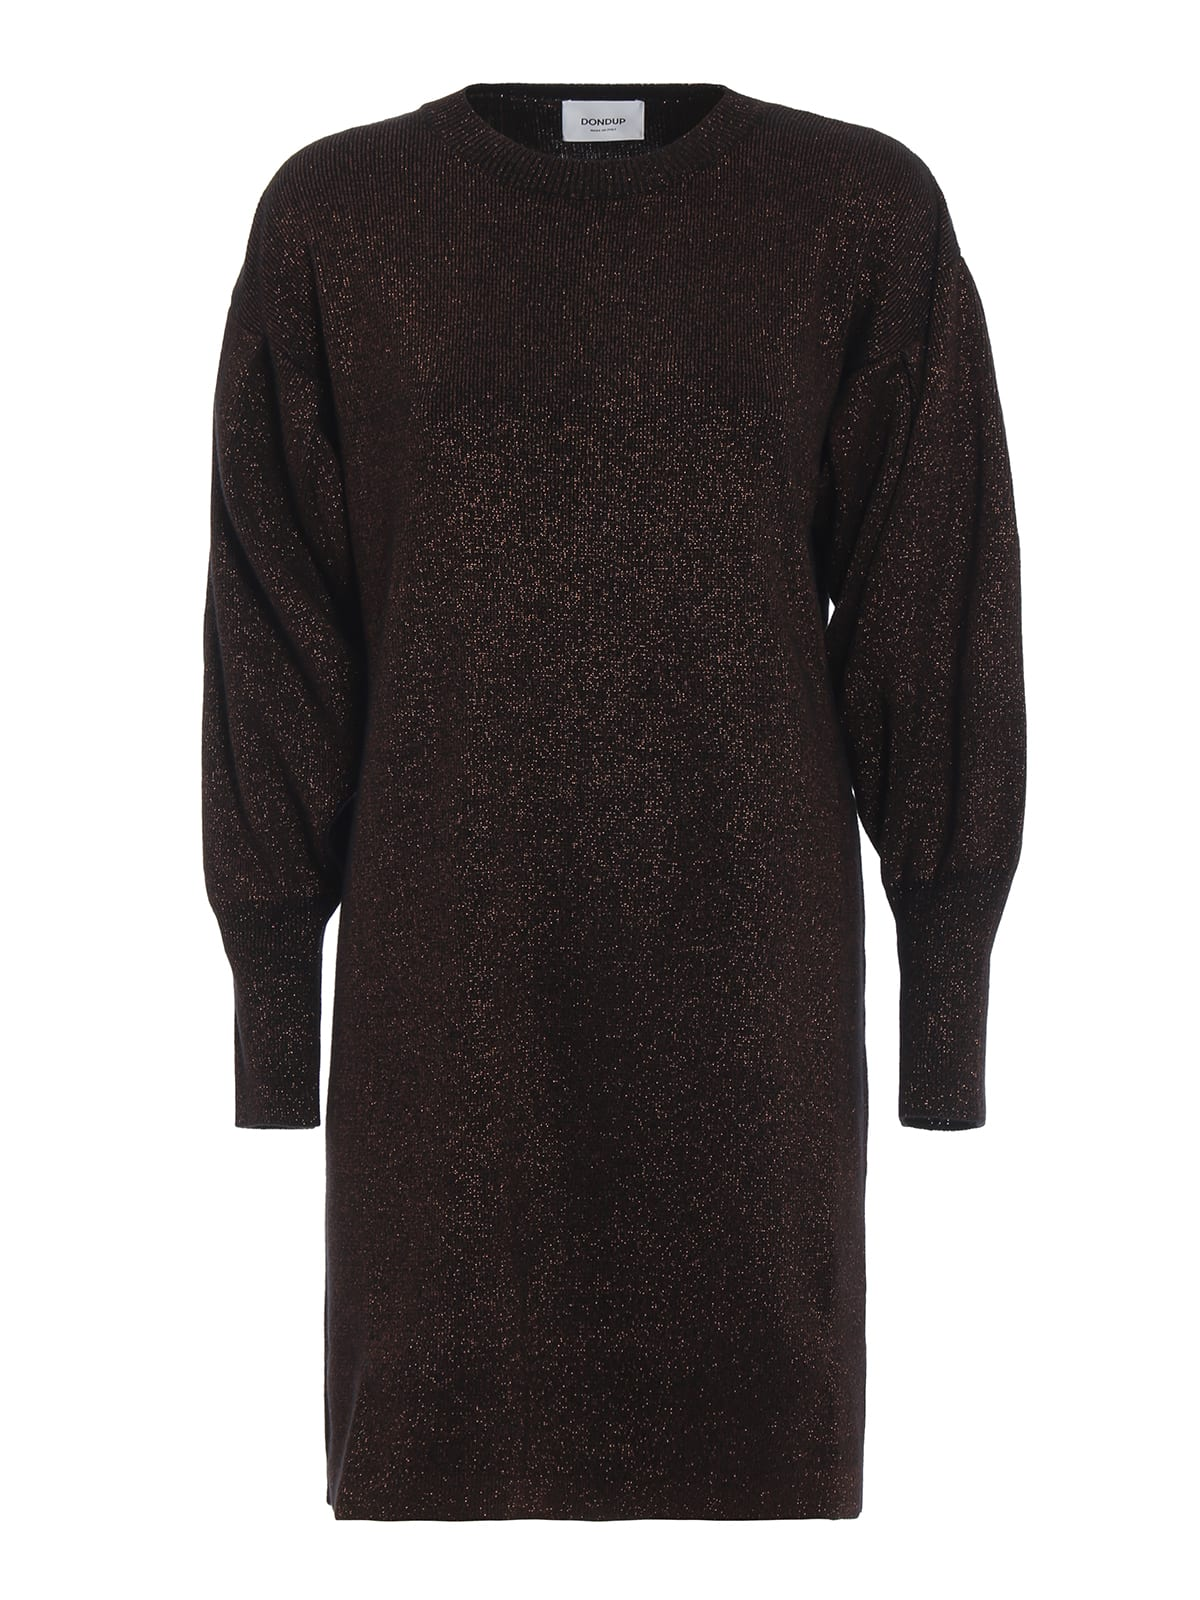 Dondup Wool Blend Lurex Knit Dress